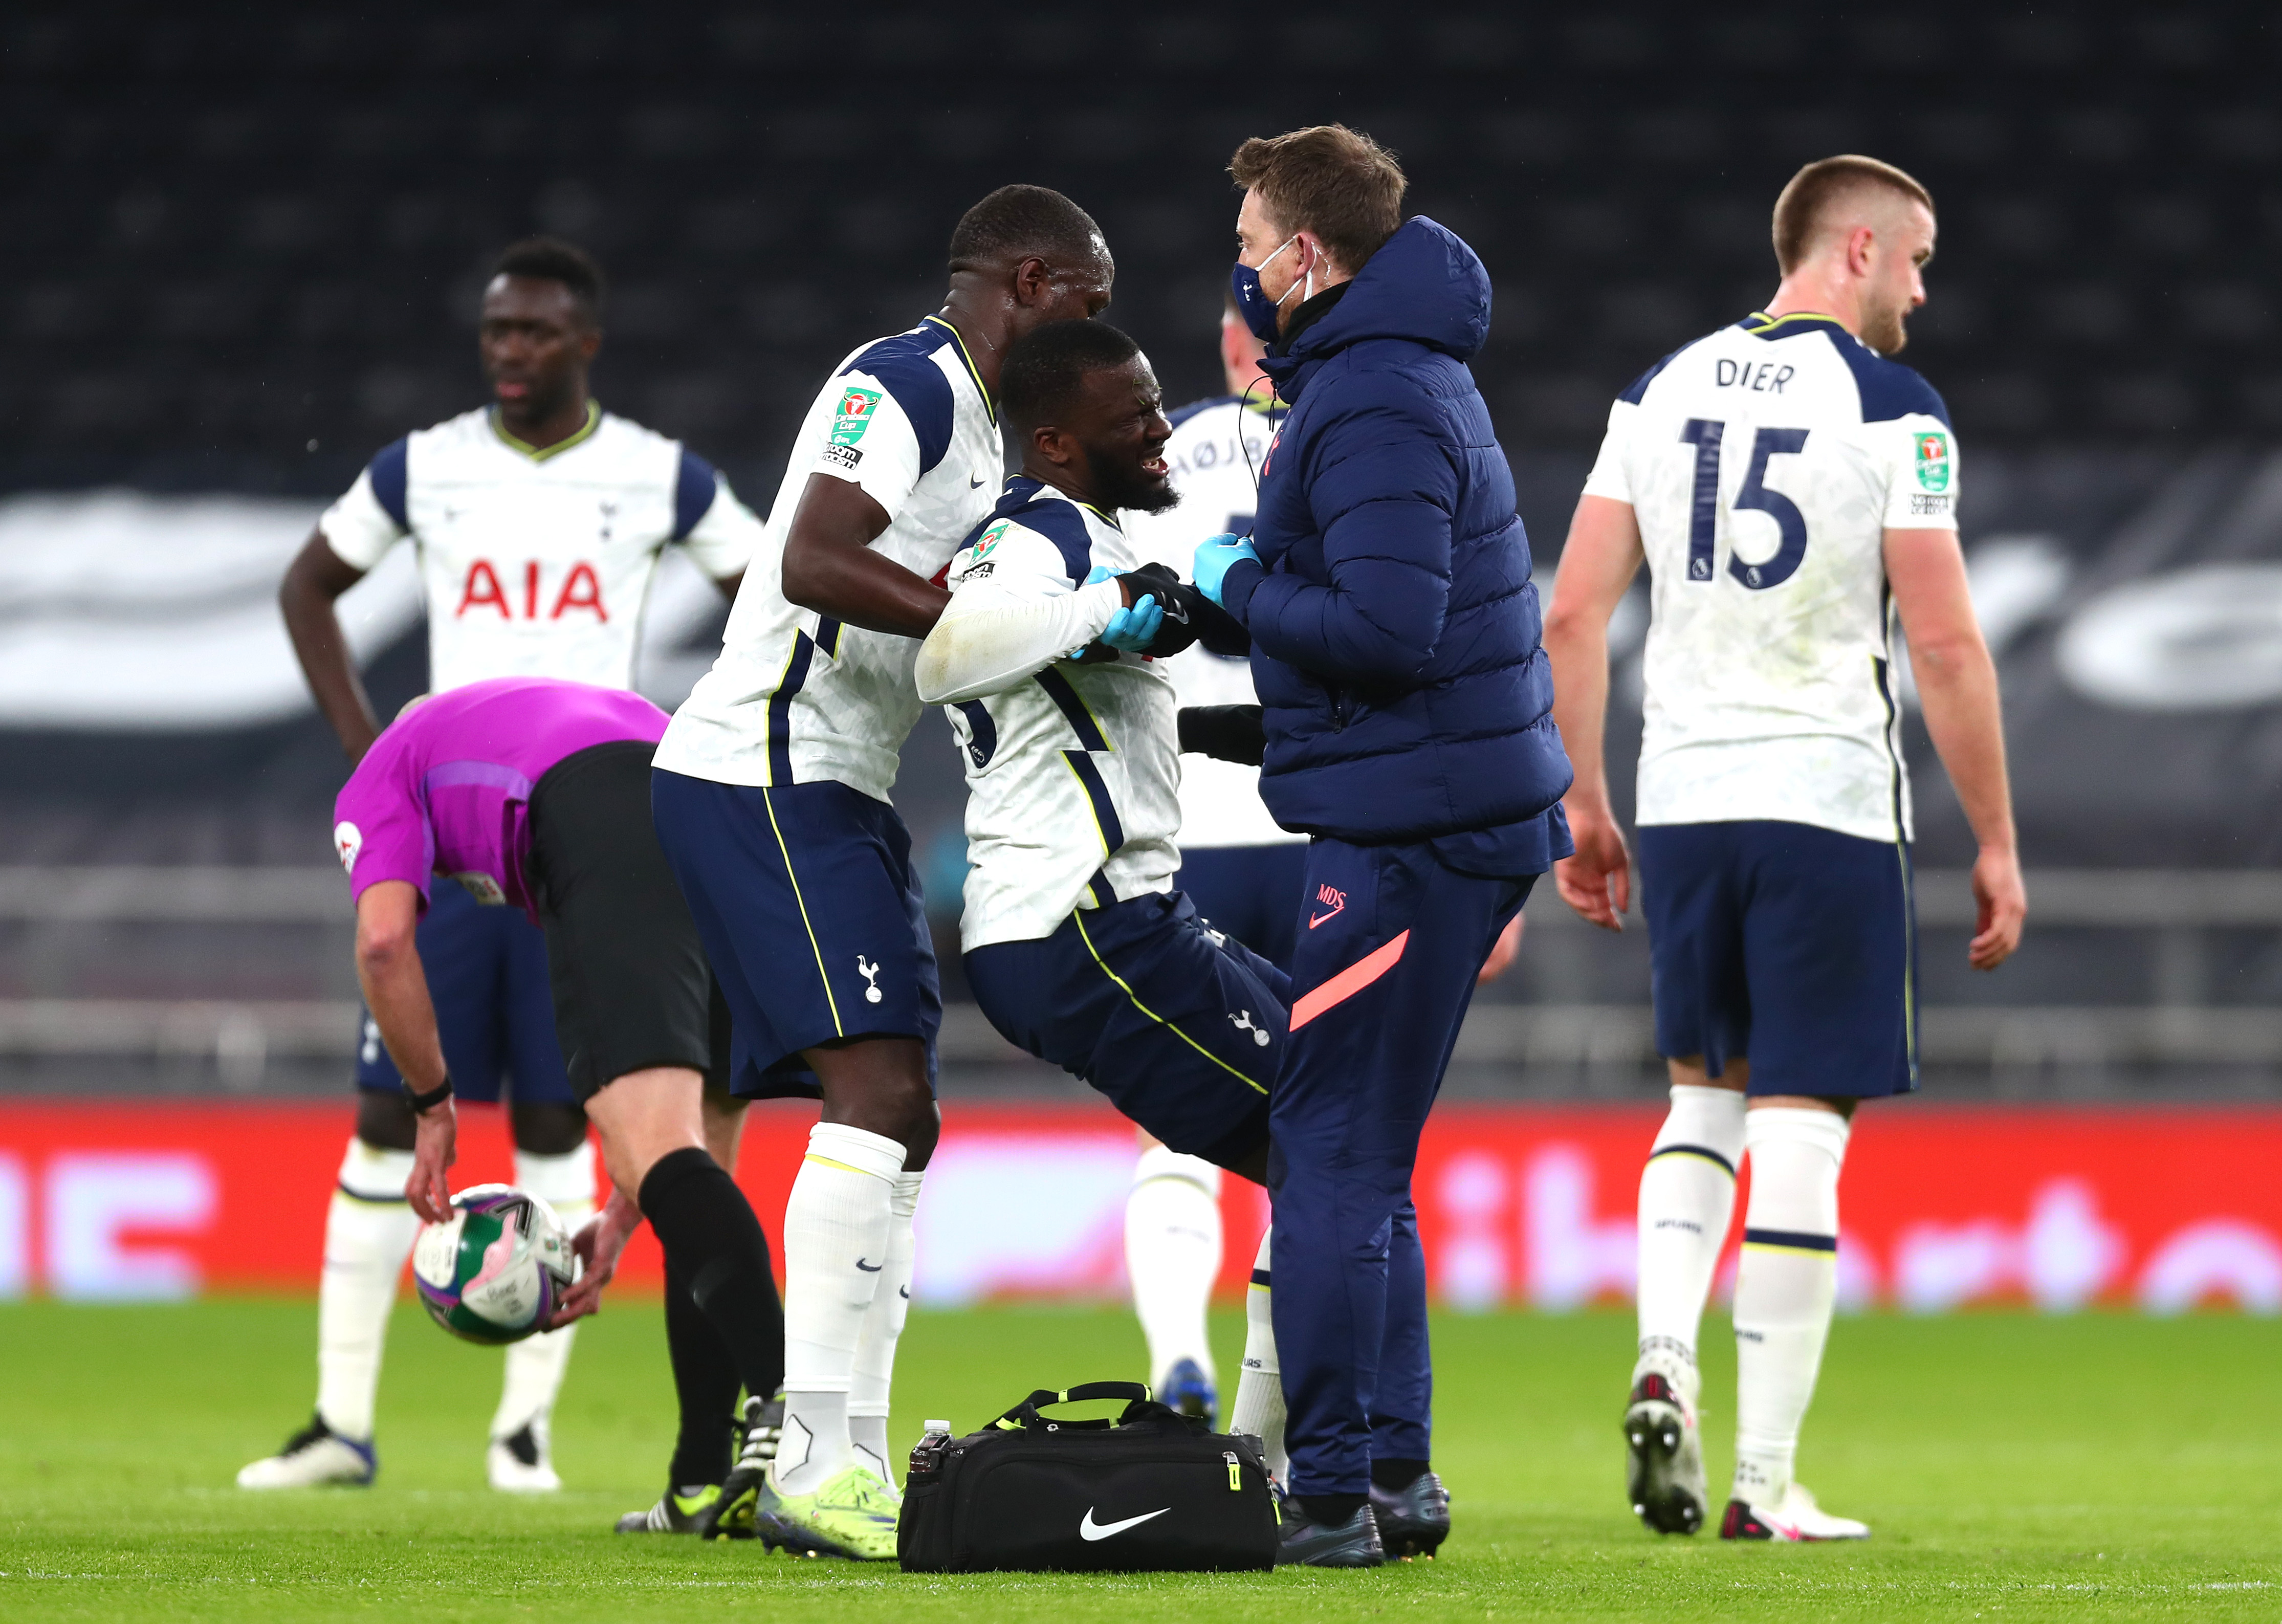 4-2-3-1 Tottenham Hotspur Predicted Lineup Vs Sheffield United (Tottenham Hotspur players are seen in the photo)